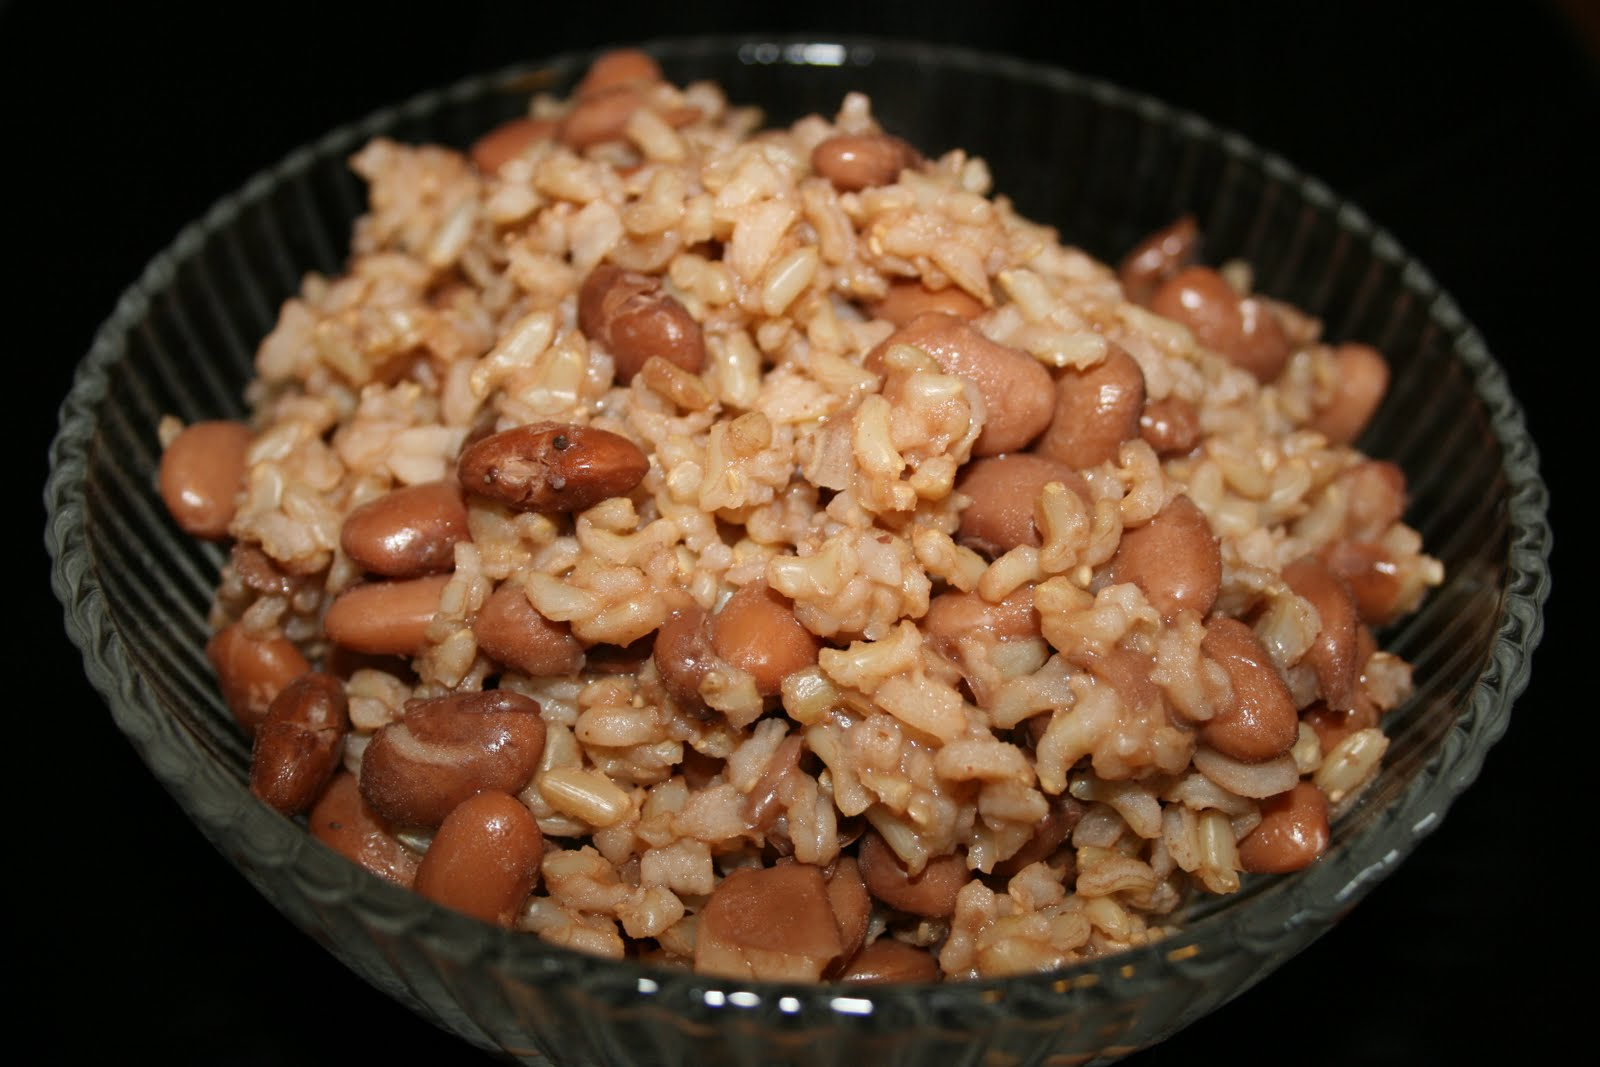 Christy Dorrity Author: Tasty Tuesday-Back to Basics Beans and Rice